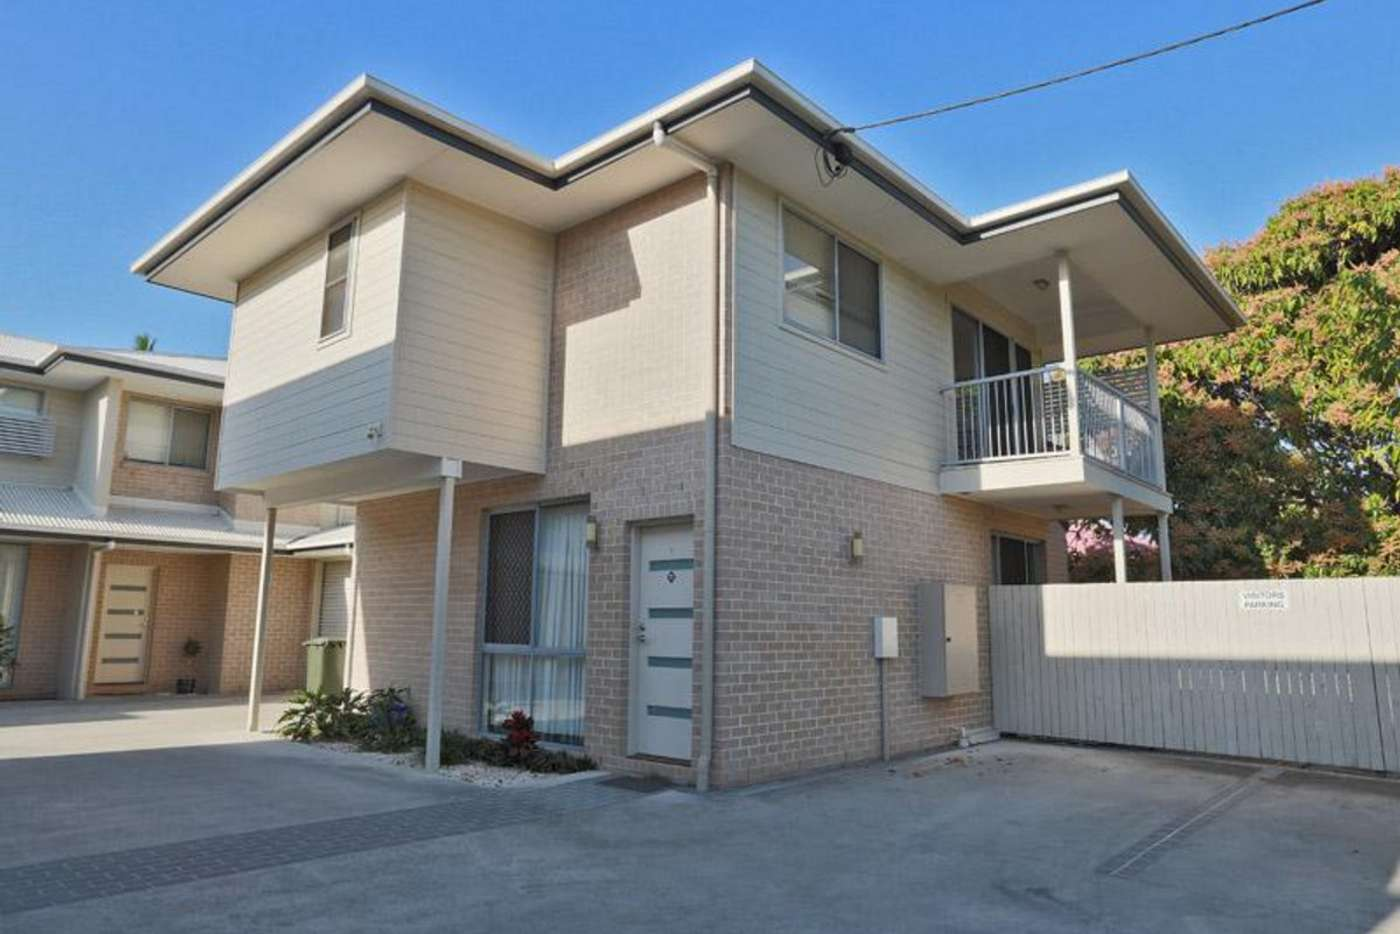 Main view of Homely townhouse listing, 1/42 Pioneer Street, Zillmere QLD 4034